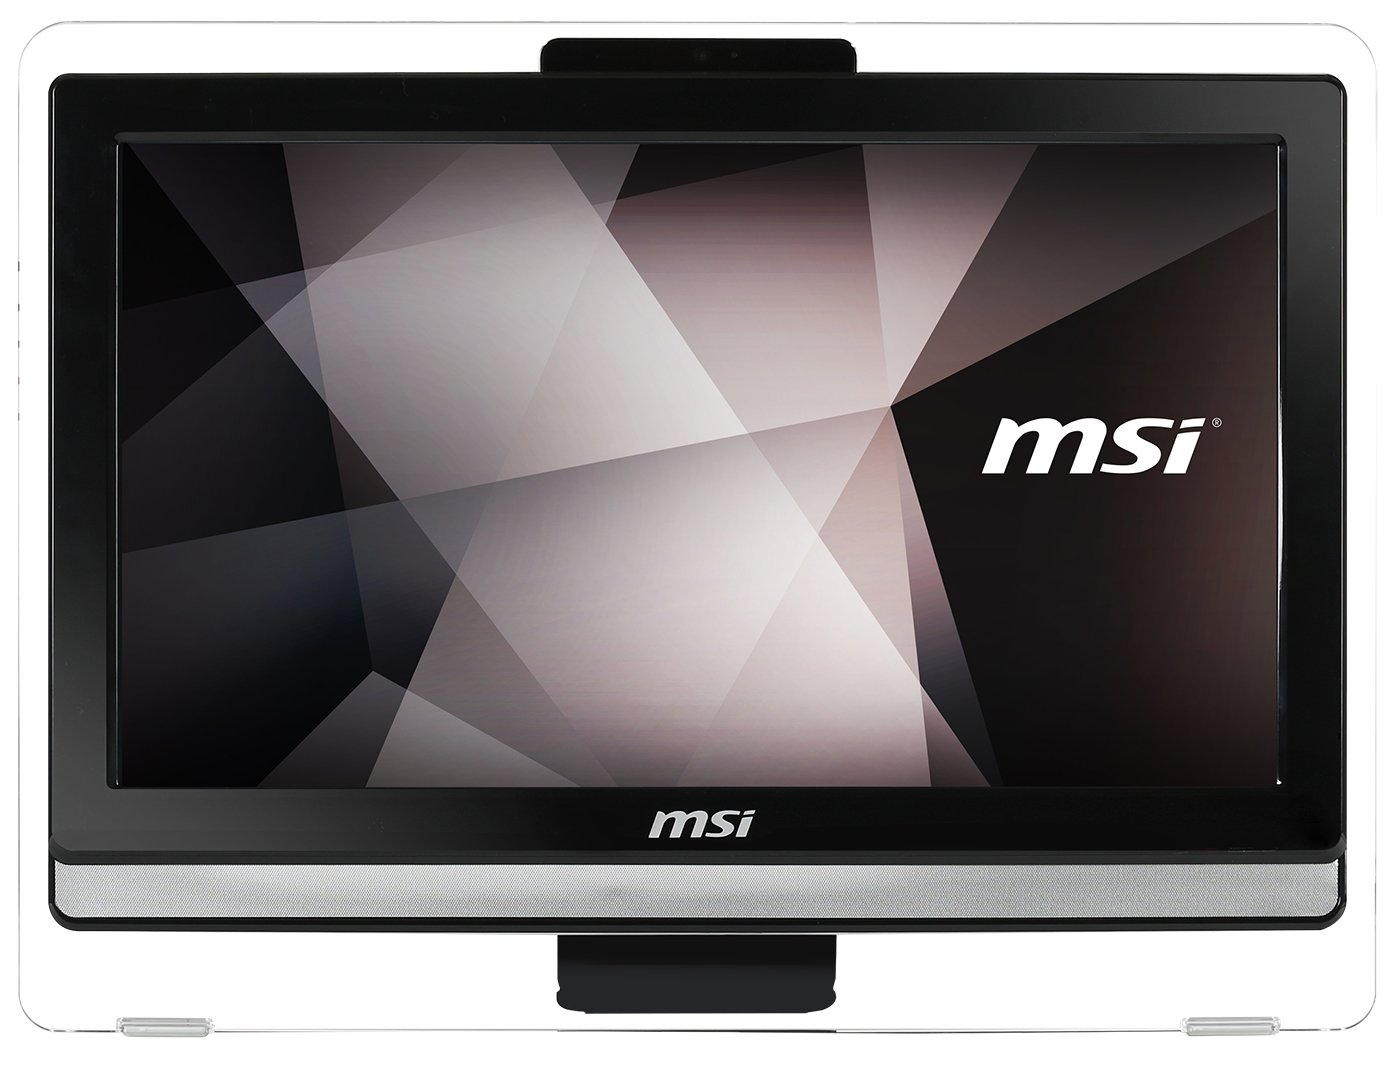 "Amazon.com: MSI Pro 20ET 4BW-048US 19.5"" Display All-In-One Desktop Intel  Celeron N3160 4GB 1TB Optical 2-point Touch Windows 10: Computers &  Accessories"